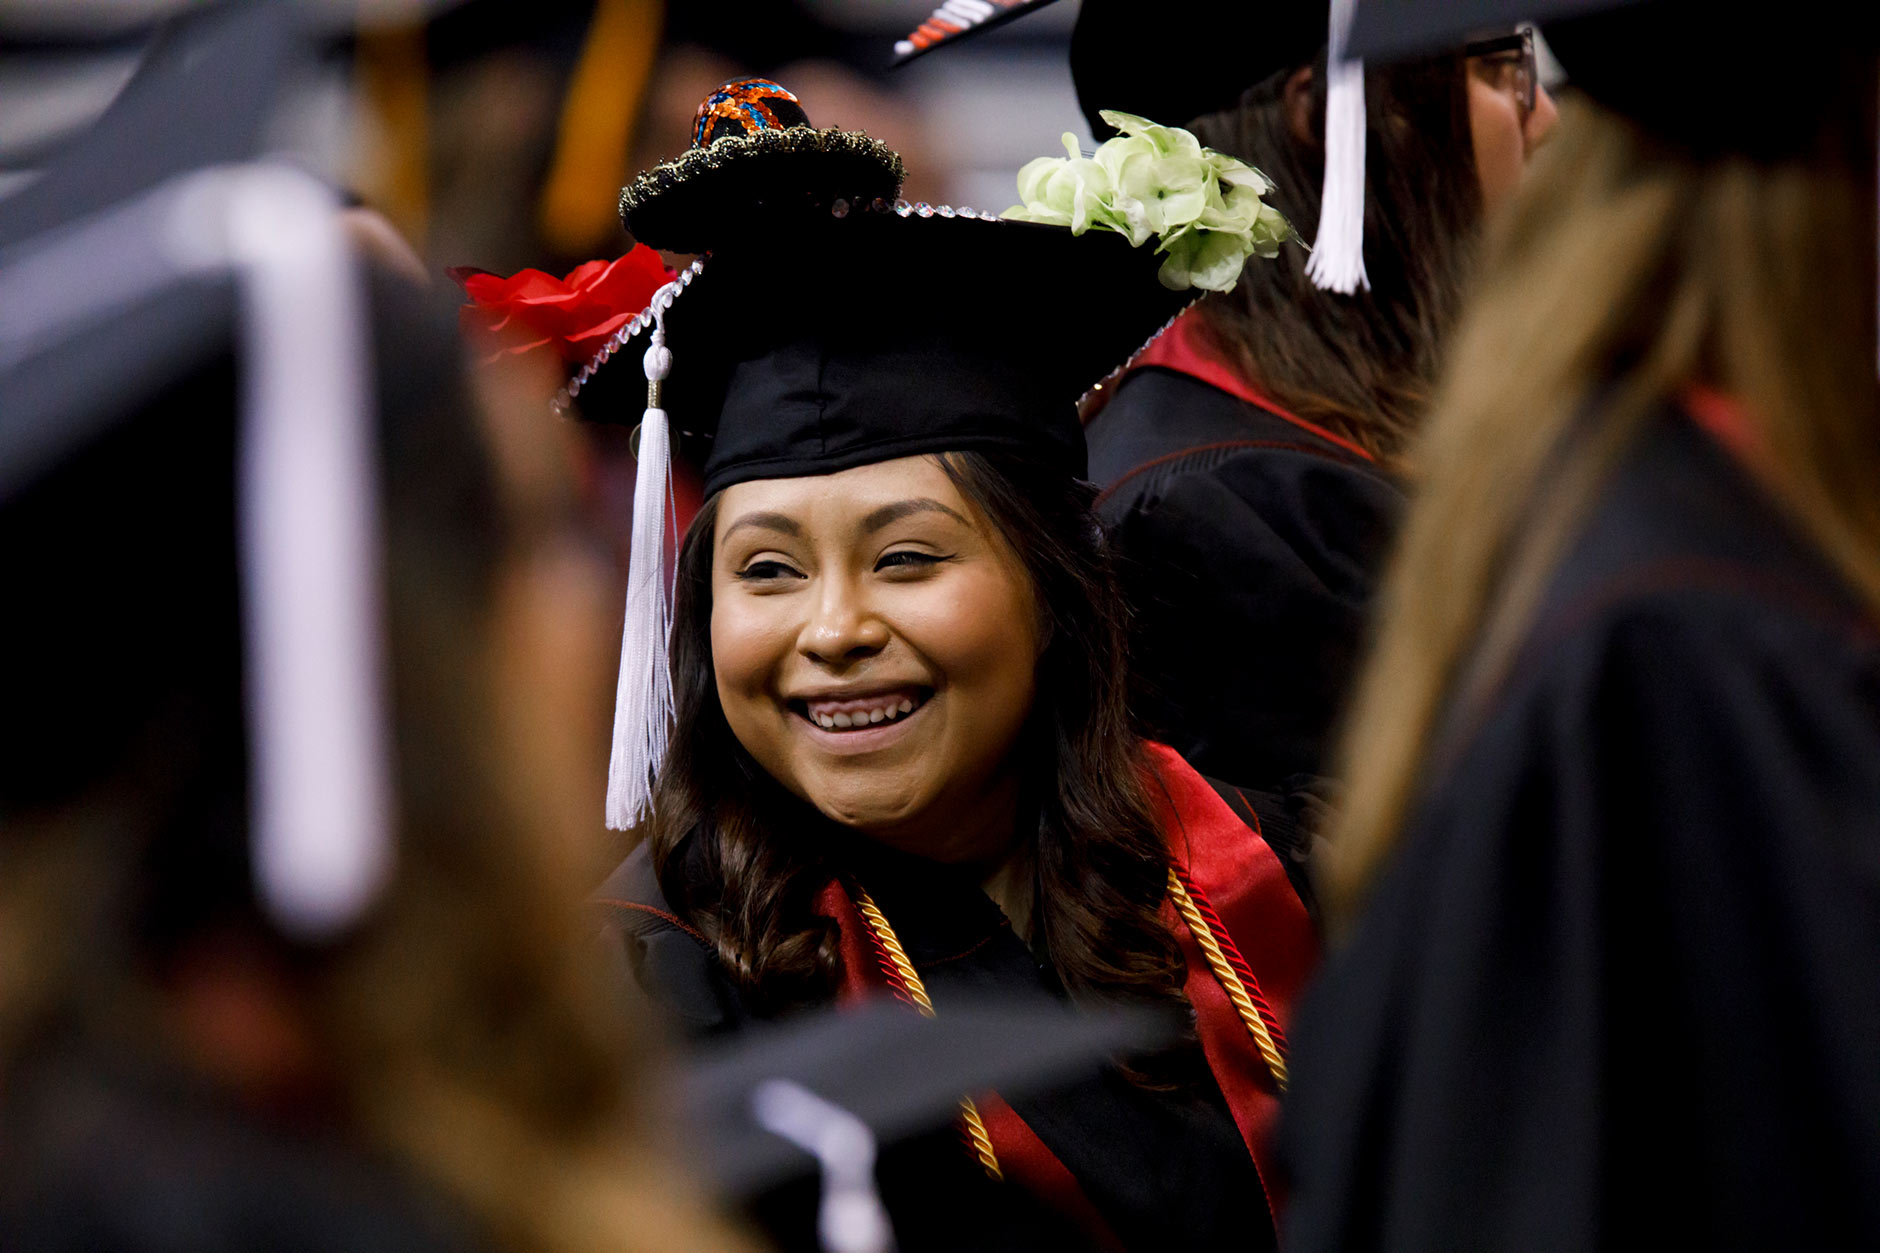 Graduate Gabriela Jaimes shares a smile as she stands with fellow graduates during the conferral of degrees at the IU Northwest Commencement at the Genesis Convention Center in Gary on Thursday, May 10, 2018. (James Brosher/IU Communications)